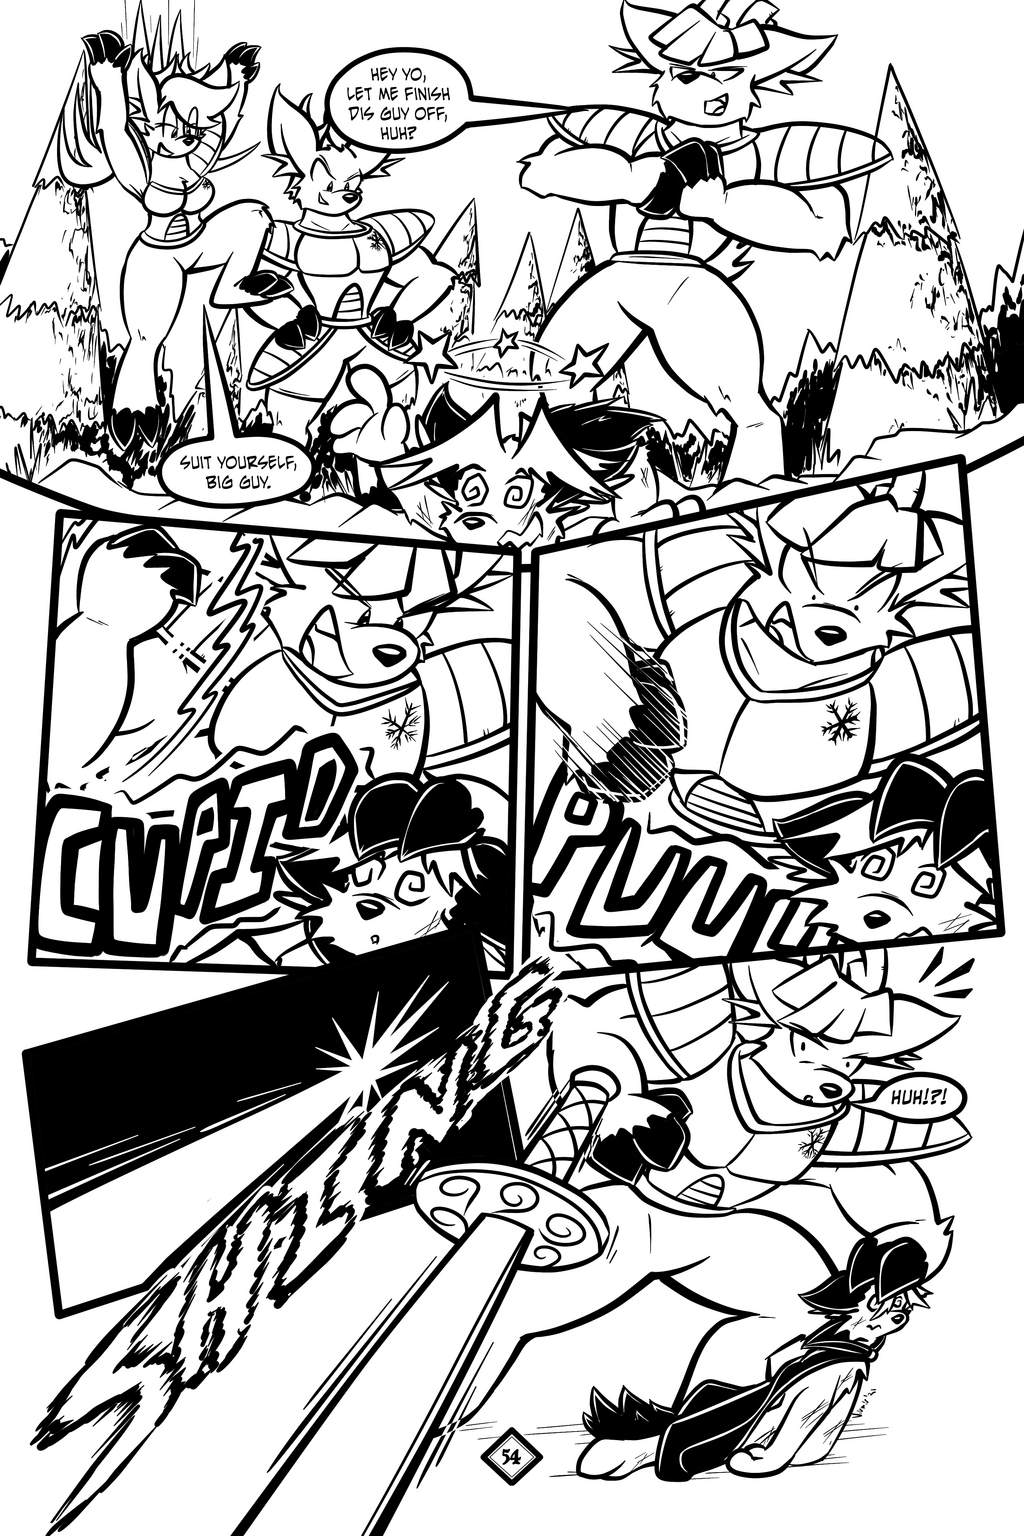 Most recent image: Holiday Special, page 54